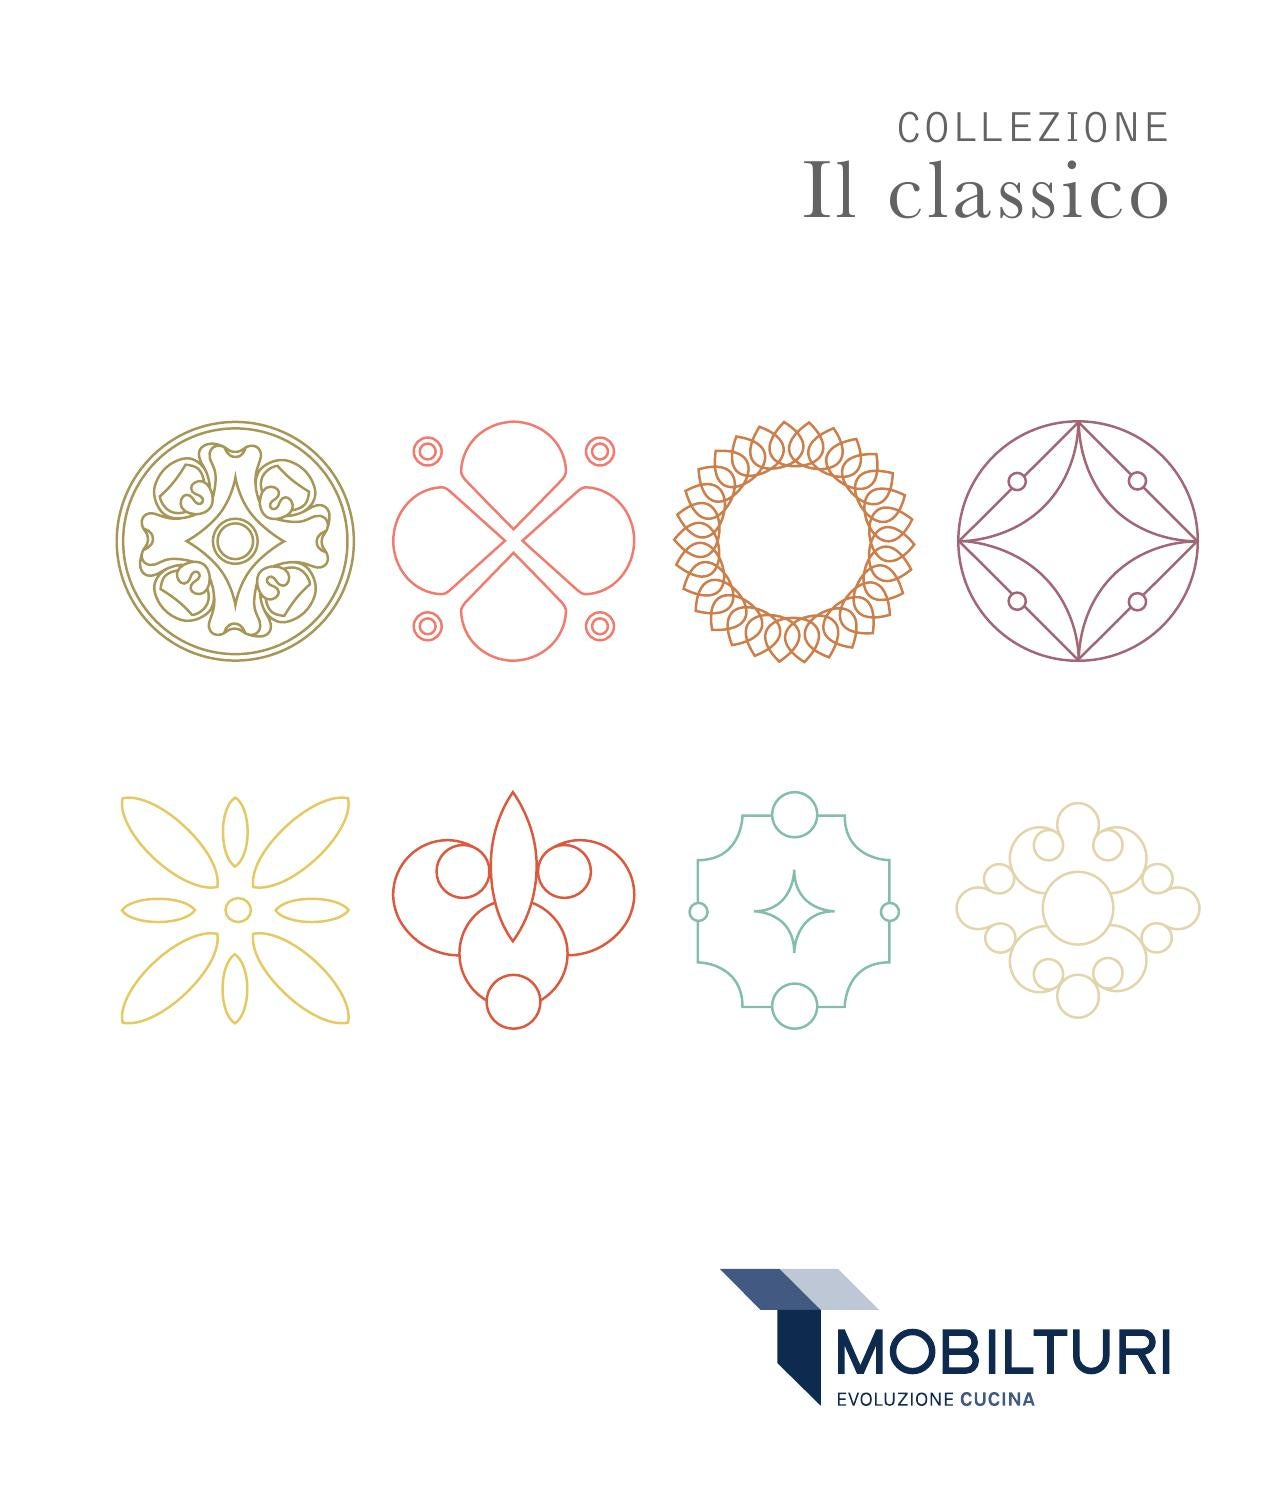 MOBILTURI - Catalogo Cucine Classiche by Ingenia Direct s.r.l. - issuu